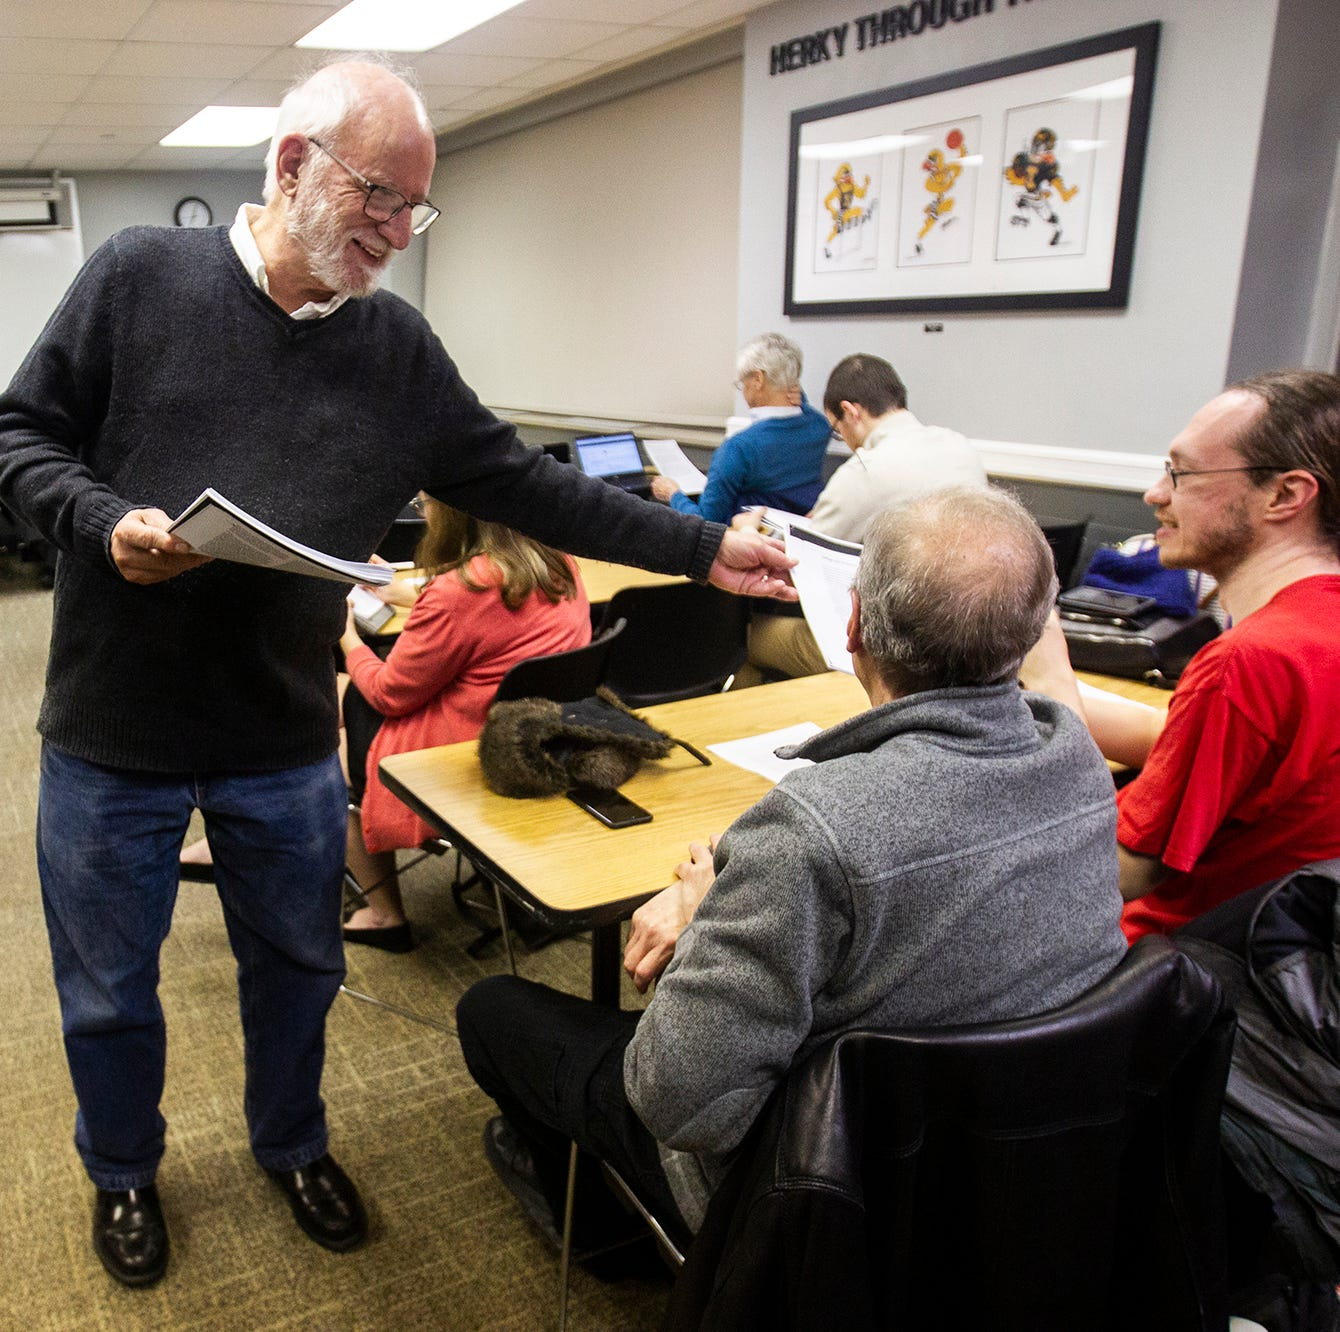 University of Iowa faculty have less and less say in decisions, says professor association